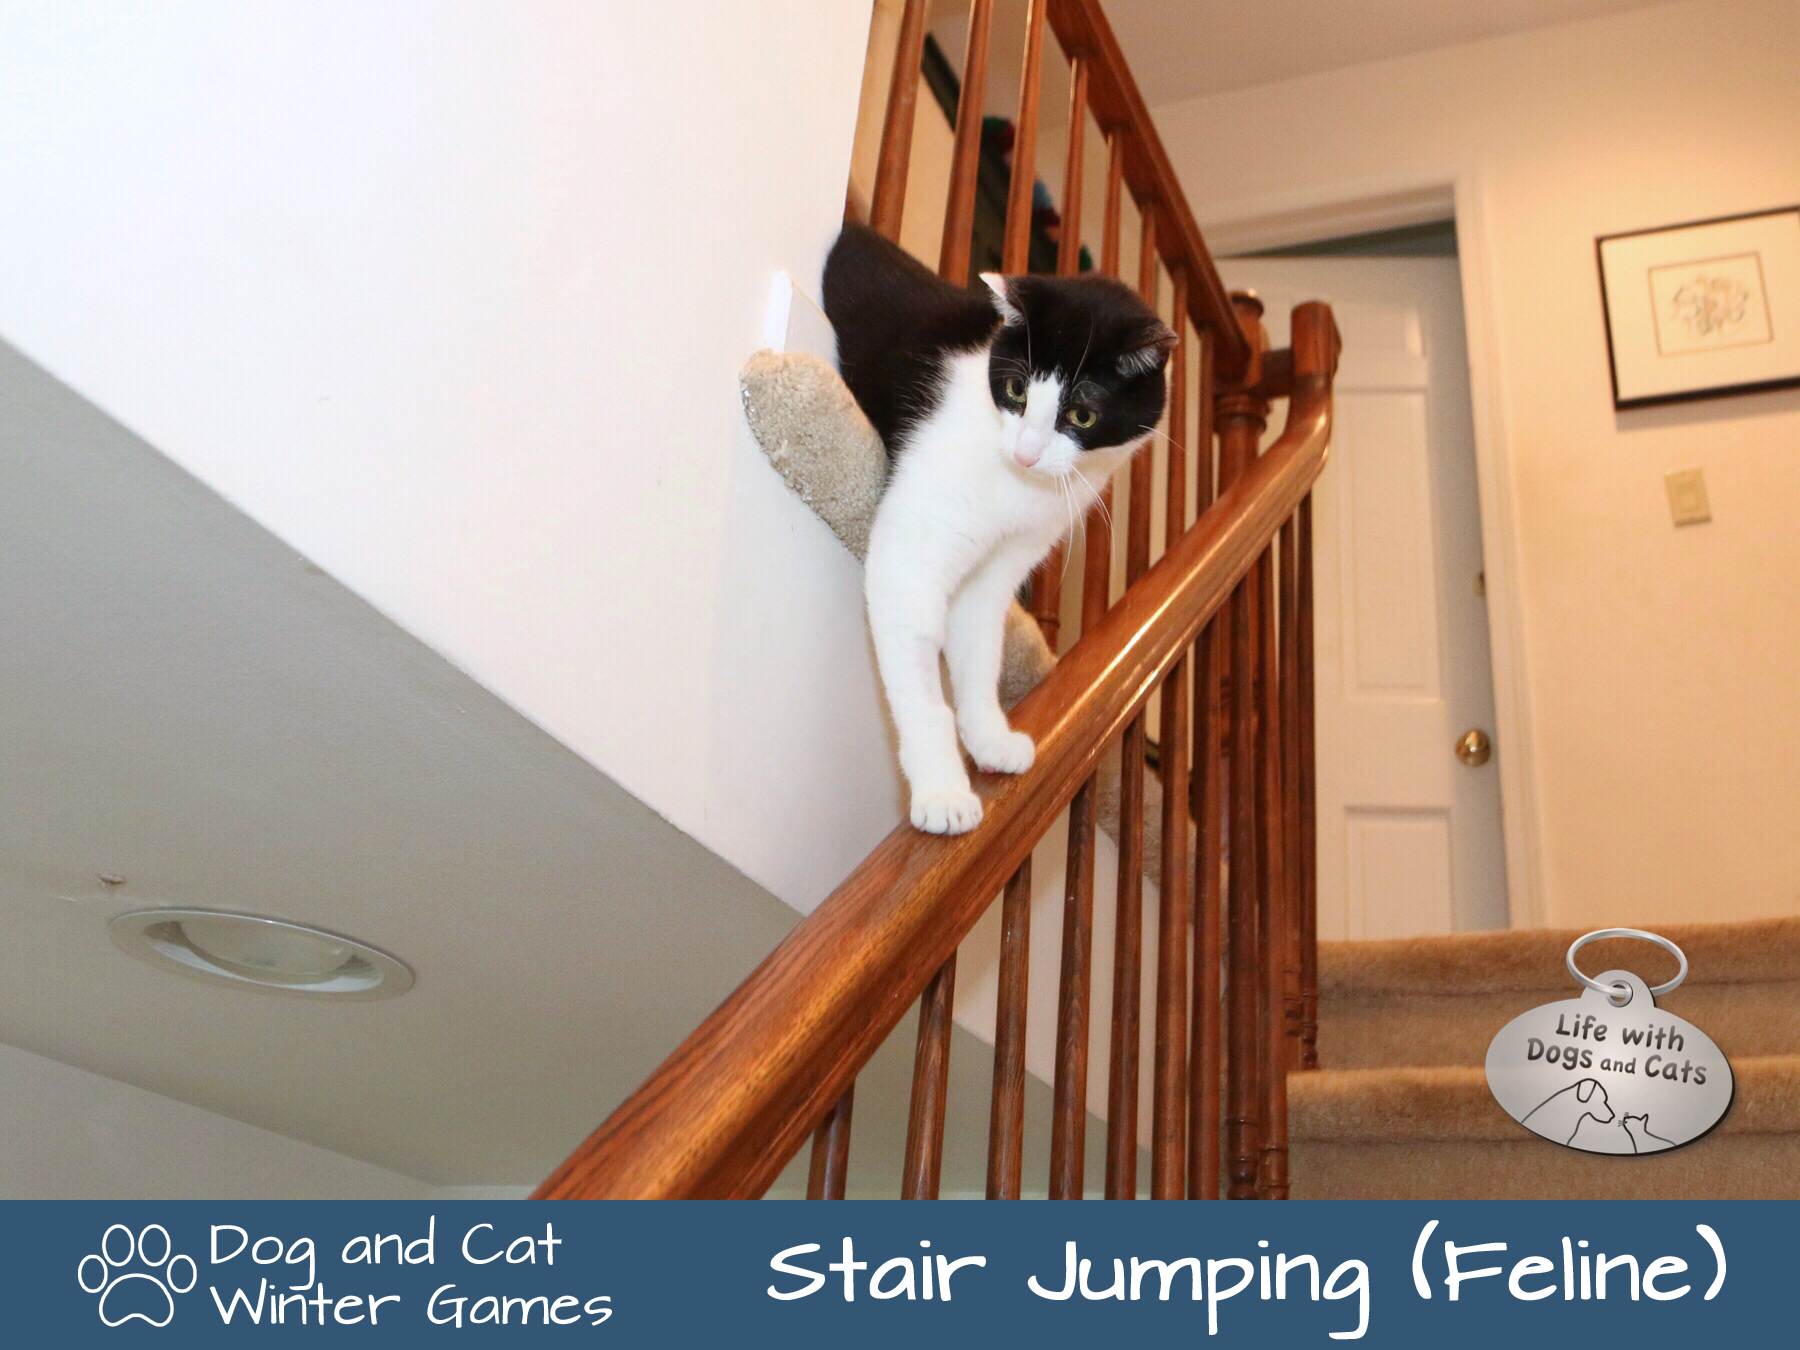 Dog and Cat Winter Games: Stair Jumping